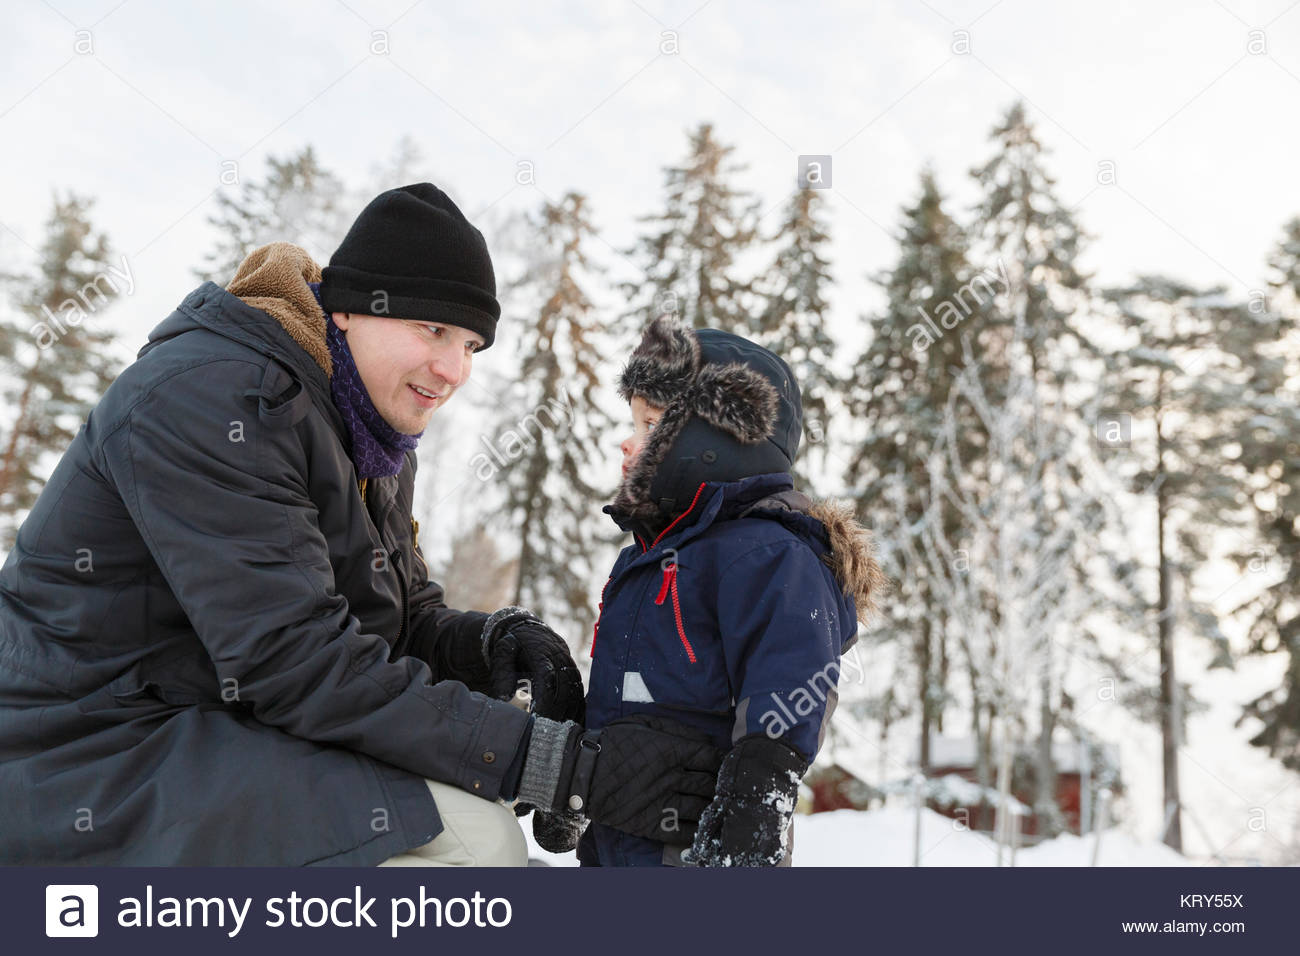 Father and son wearing hats during winter - Stock Image